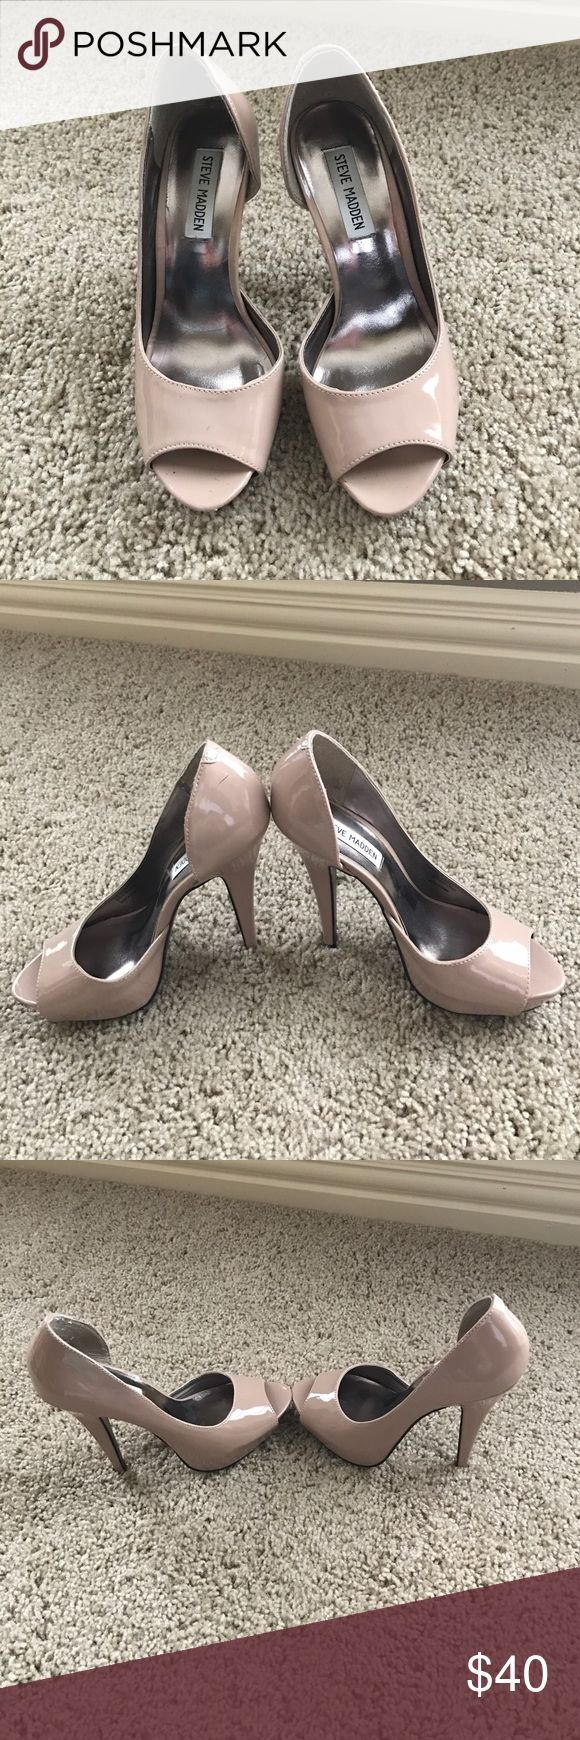 Steve Madden Emele nude patent open toed heels Great used condition size 7/ (5 inch heel) Steve Madden Shoes Heels